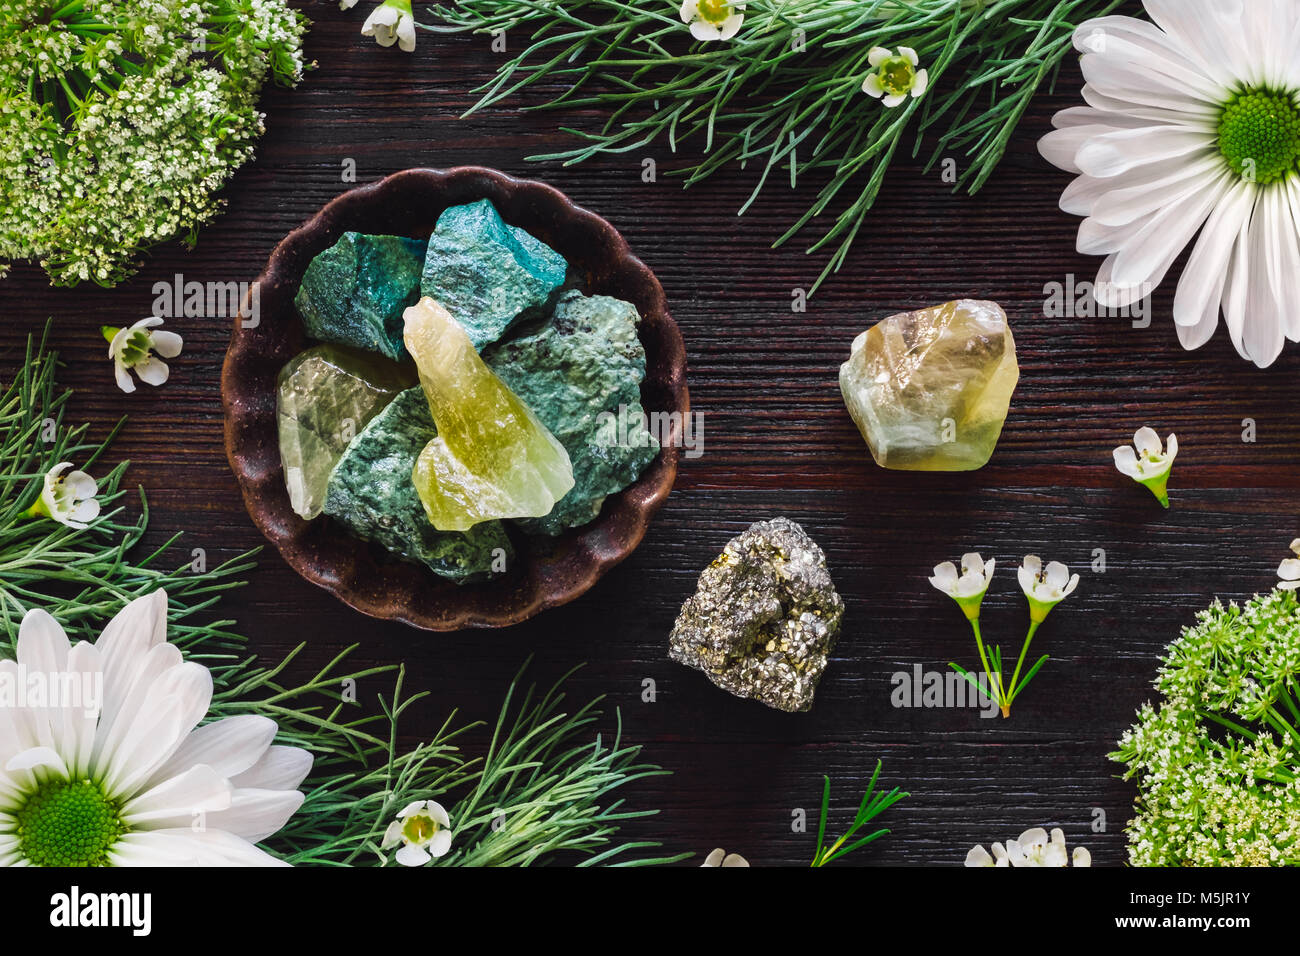 Green Aventurine, Green Calcite and Pyrite with Mixed Botanicals on Dark Table - Stock Image